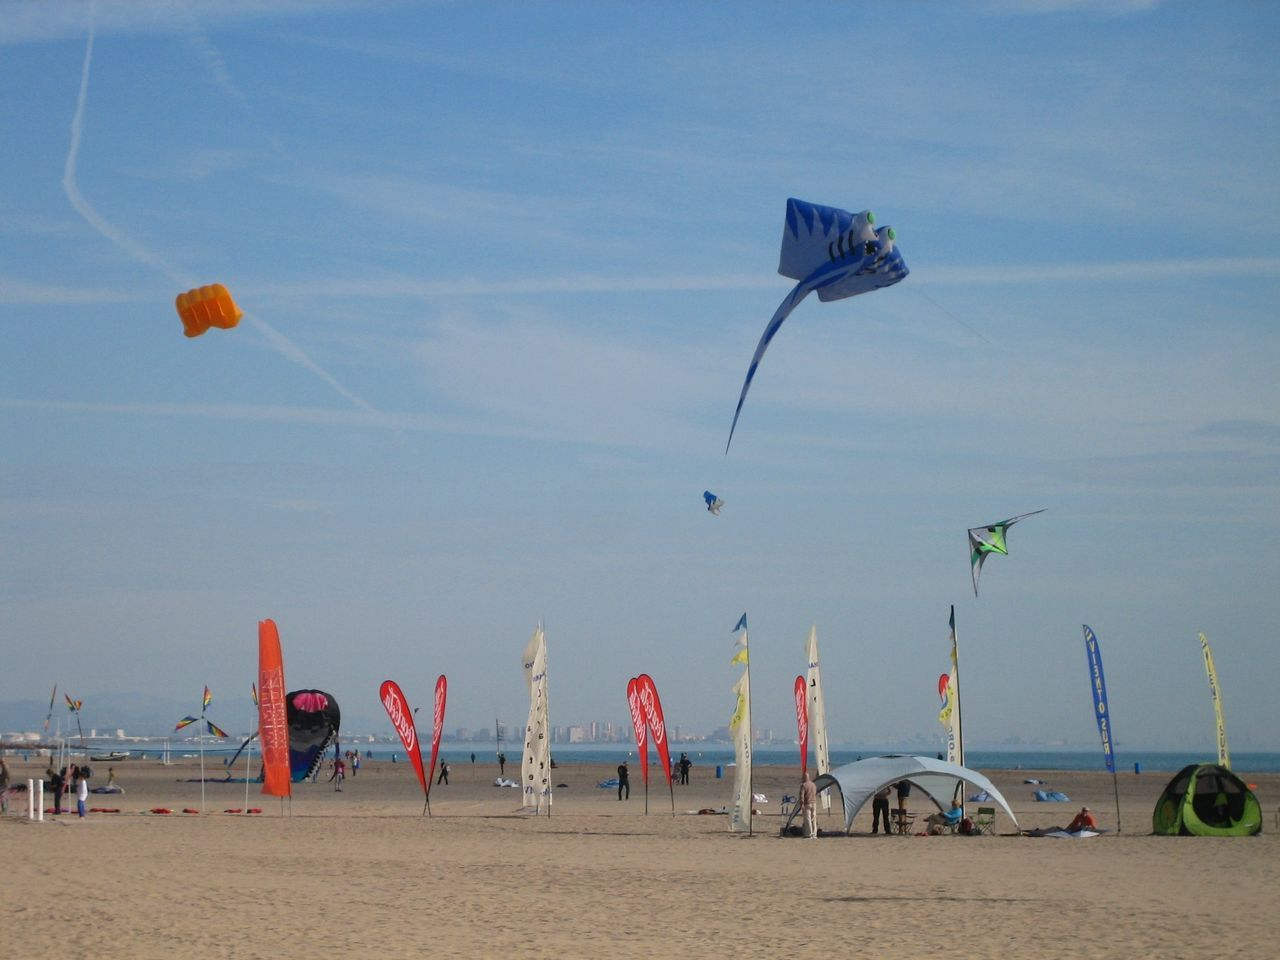 03/04/2016 Beach Cometa Cometas Kite Kites Kite Flying Flag Fly Flying Flying High Horizon Over Water International Kite Festival Multi Colored Mediterranean Sea Vacations Sea Water Showcase April Air Borne Kite In The Sky Kite In Flight Blue On Blue  Kite On The Beach Blue Kite